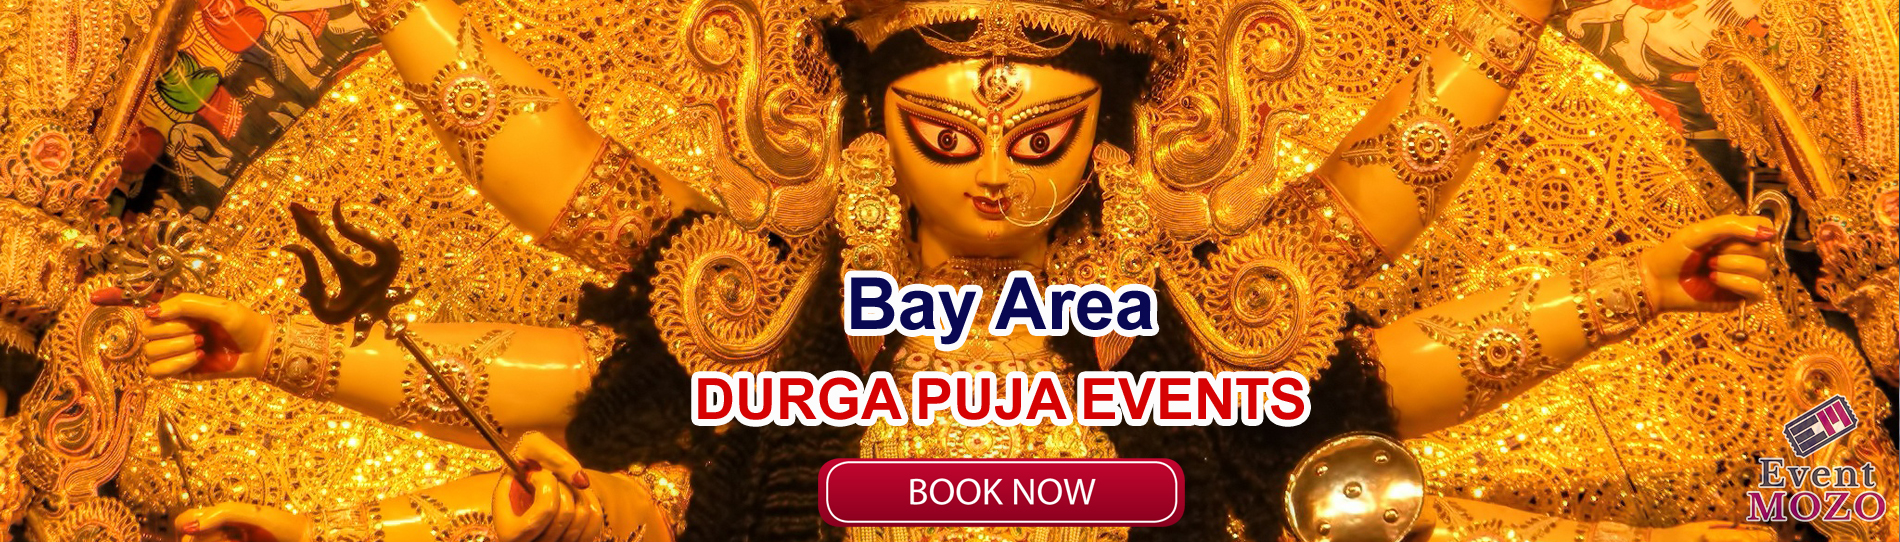 EventMozo Bay Area Durga Puja Events